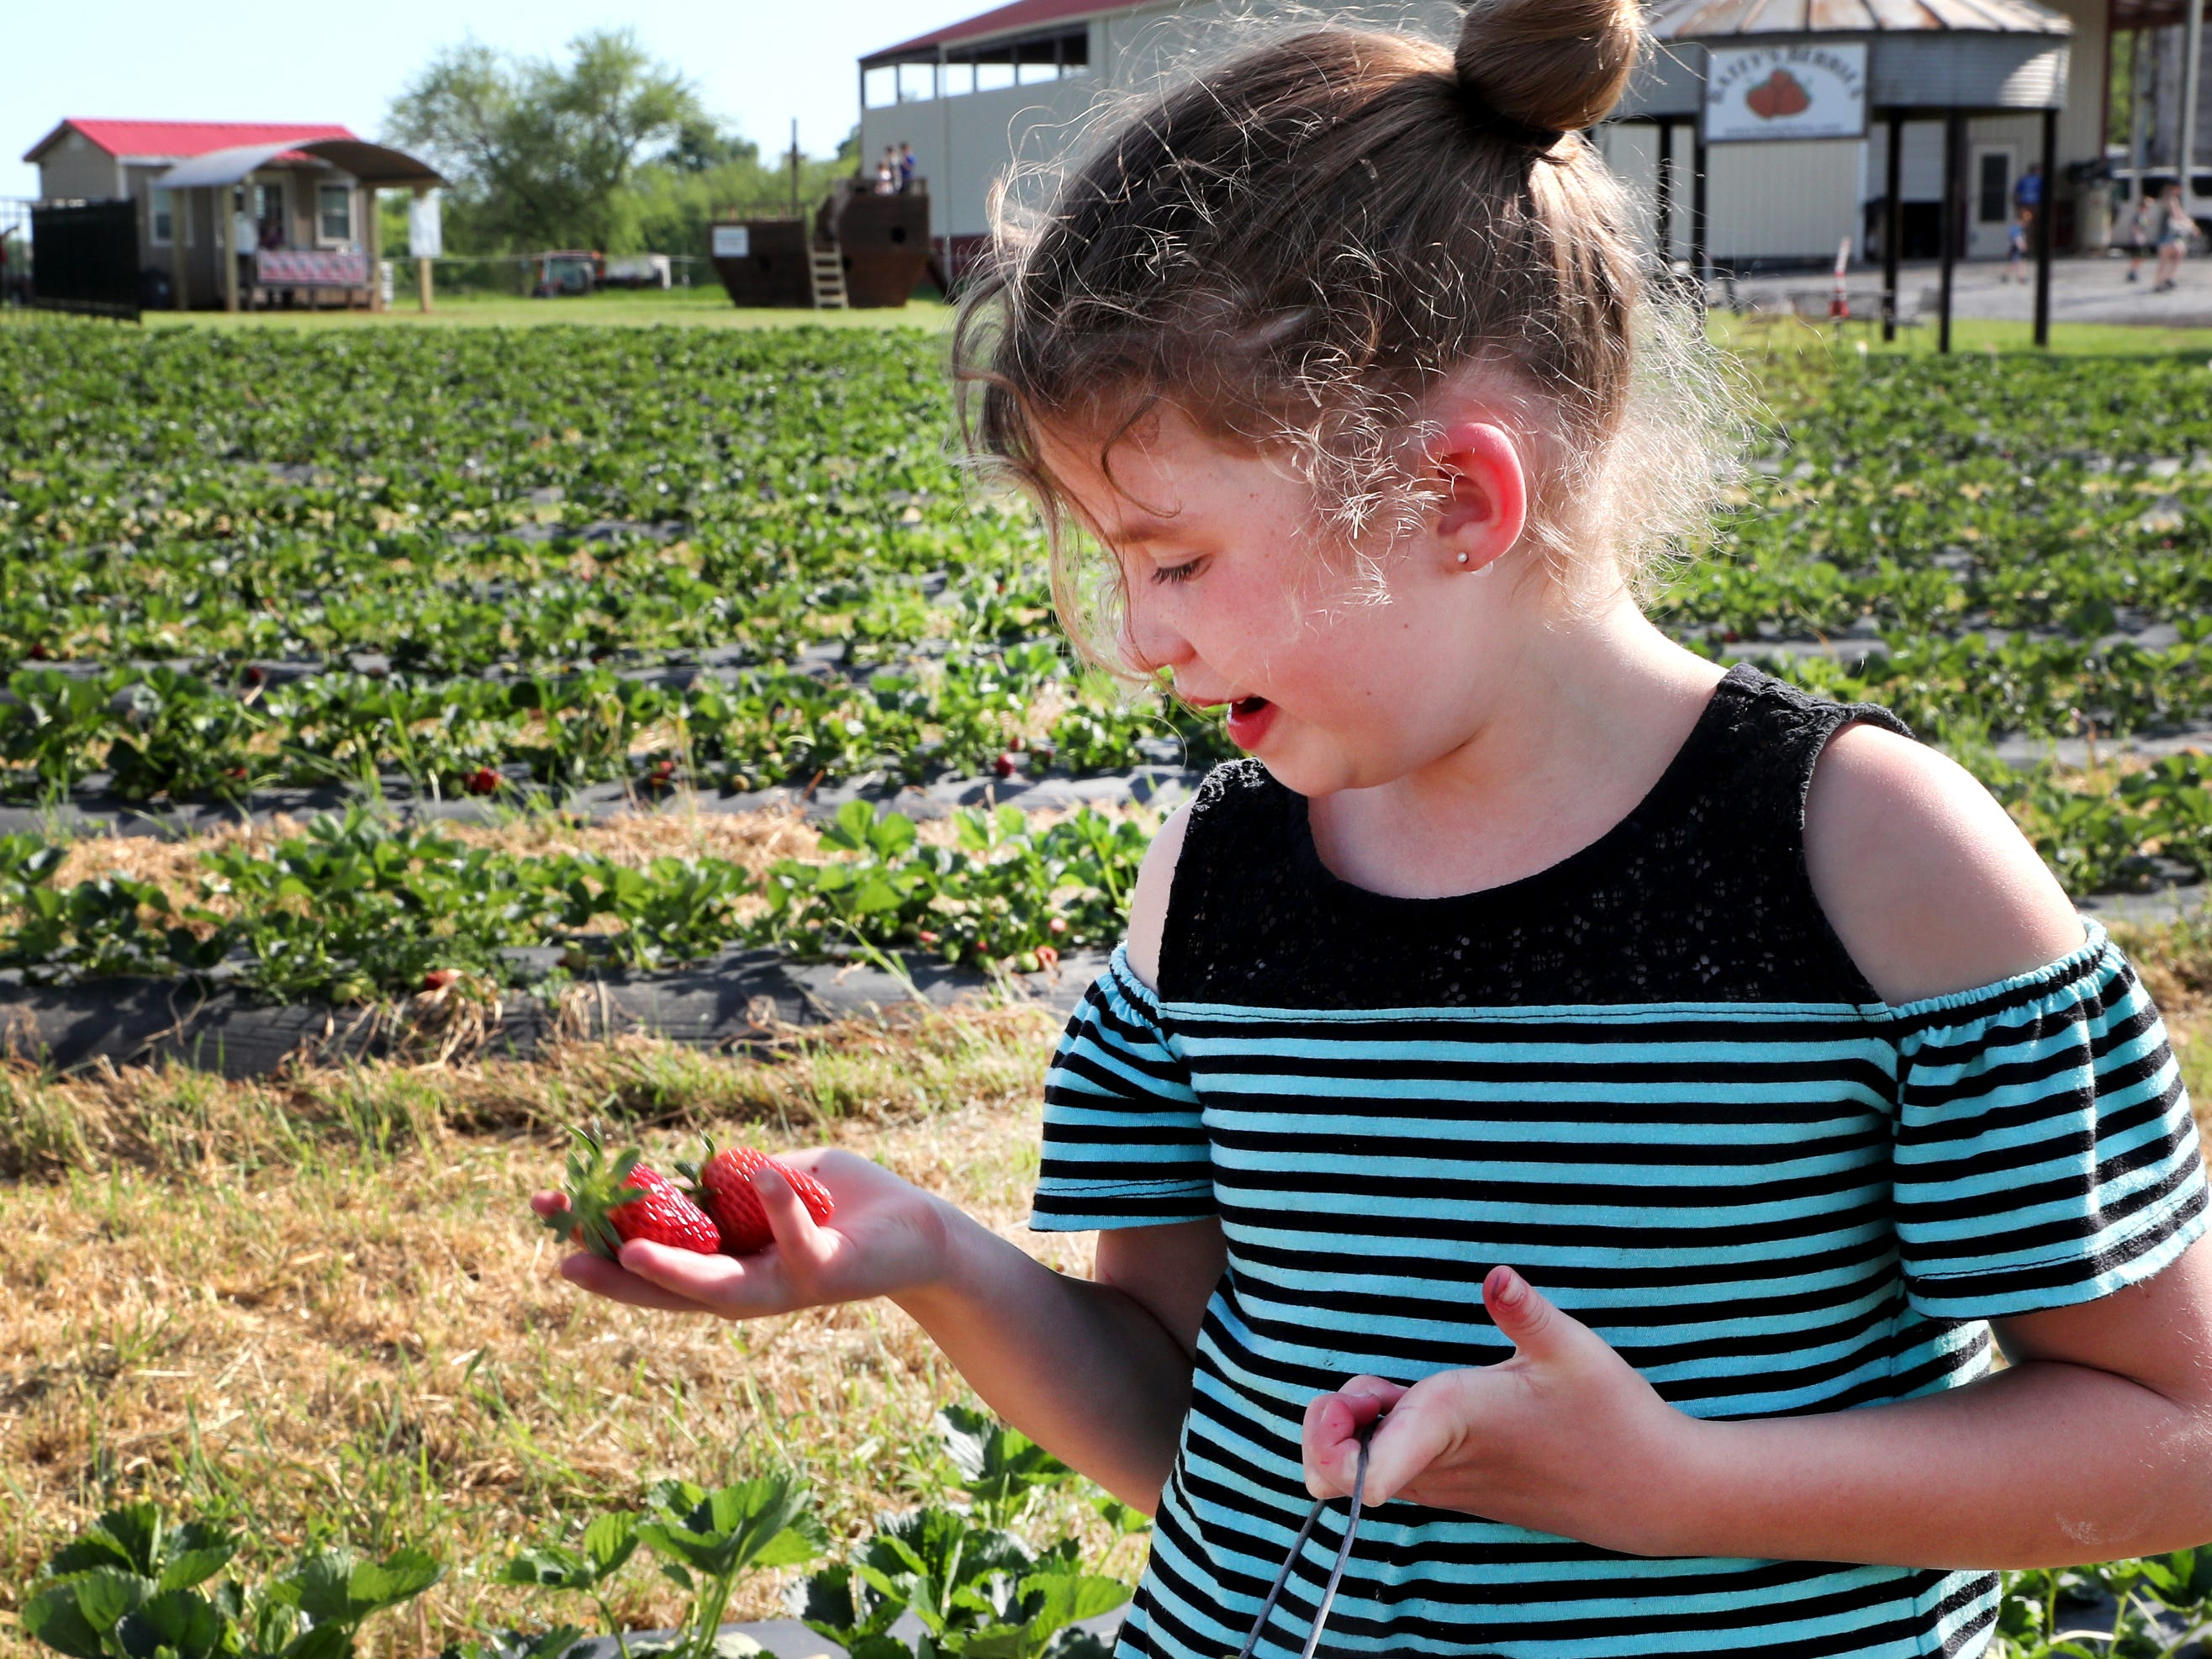 Ada Trotter, 7, fills her basket as she picks strawberries on Wednesday April 24, 2019, at Batey Farms in Murfreesboro.